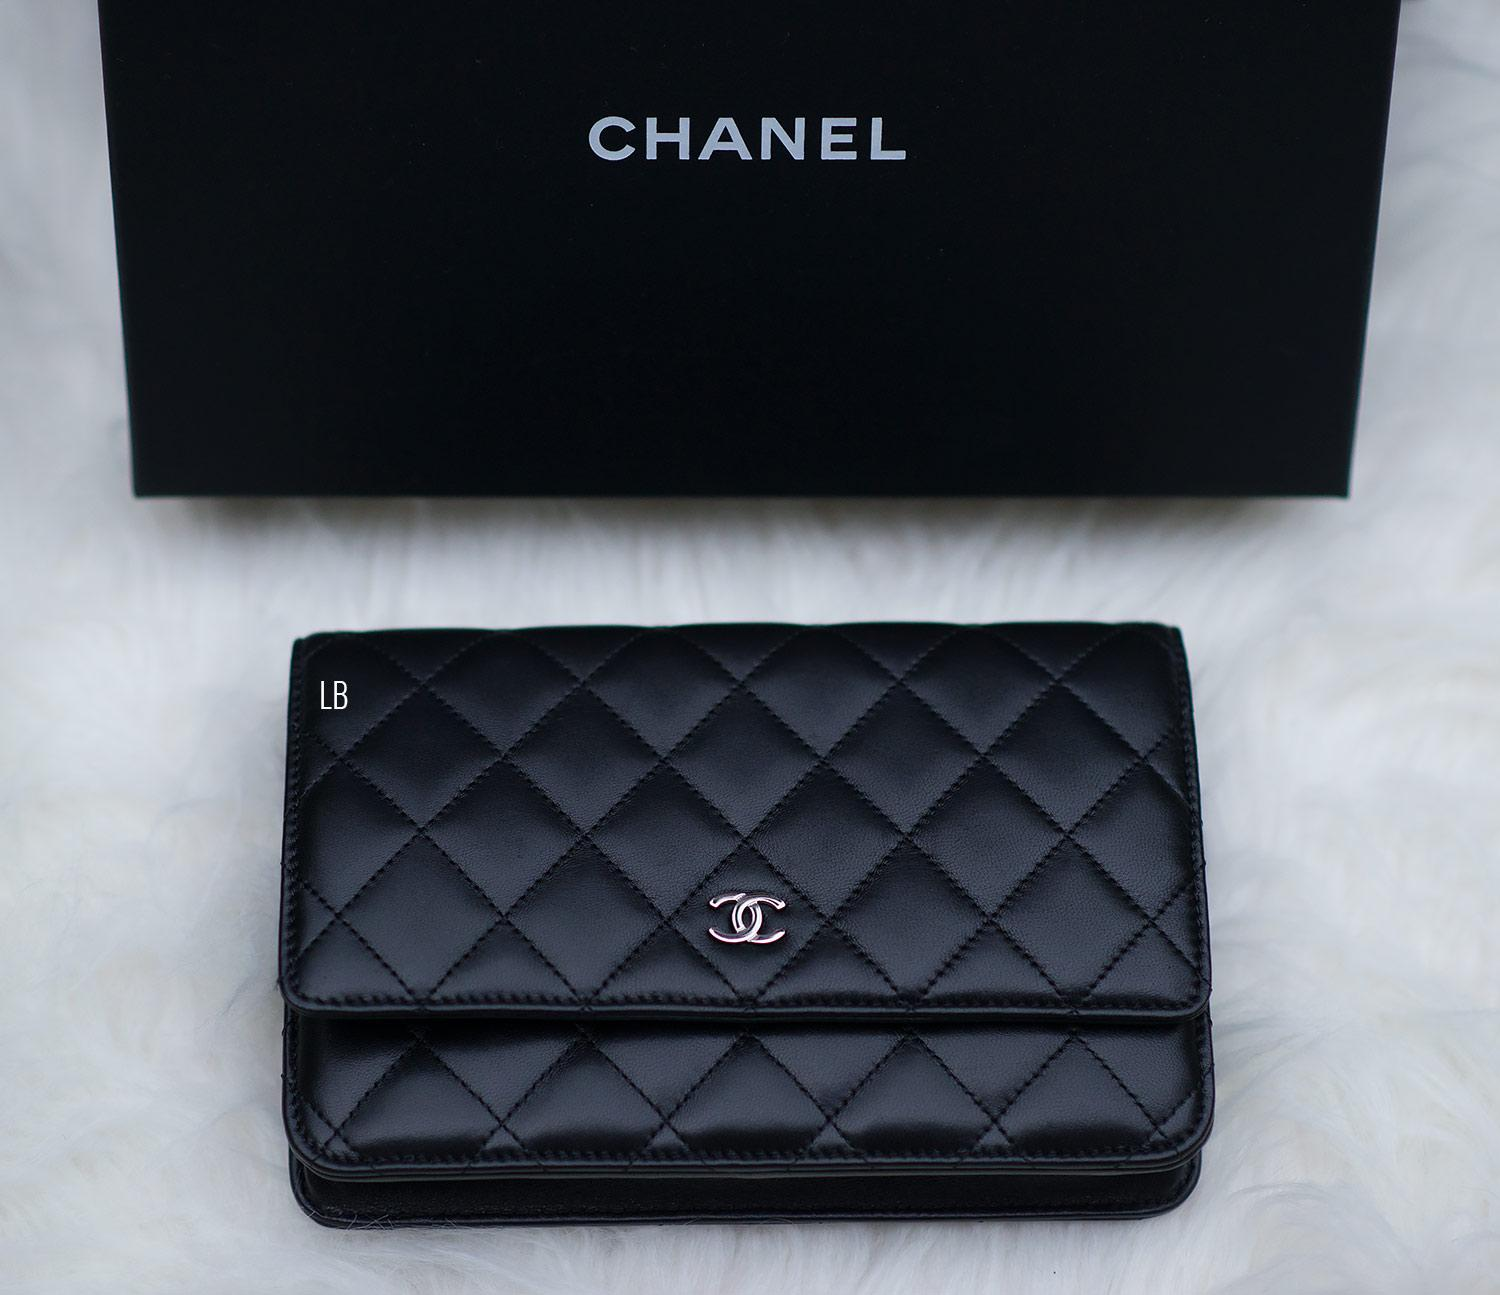 0537c288f69580 My New Chanel Wallet On Chain 'WOC' Bag In Black | Raindrops of Sapphire